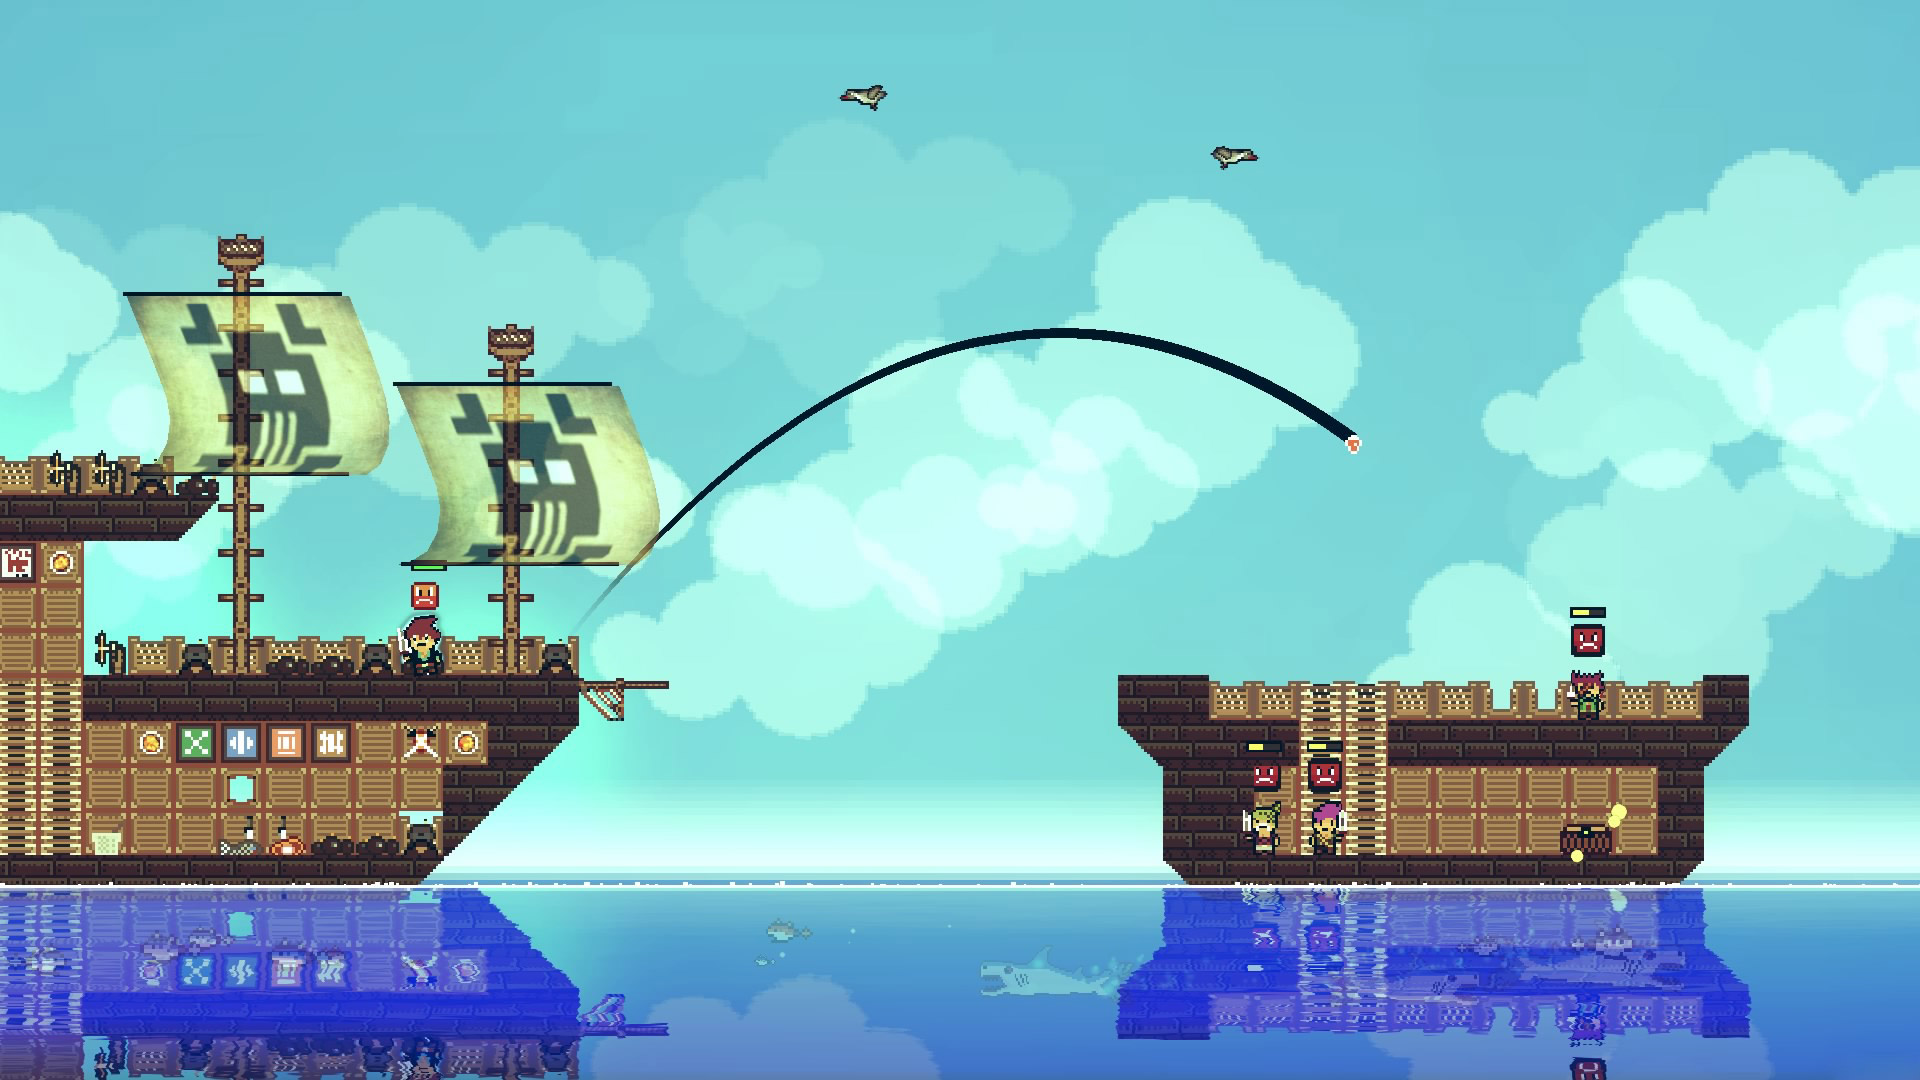 Avast! Pixel Piracy be Boarding Xbox One and PS4!